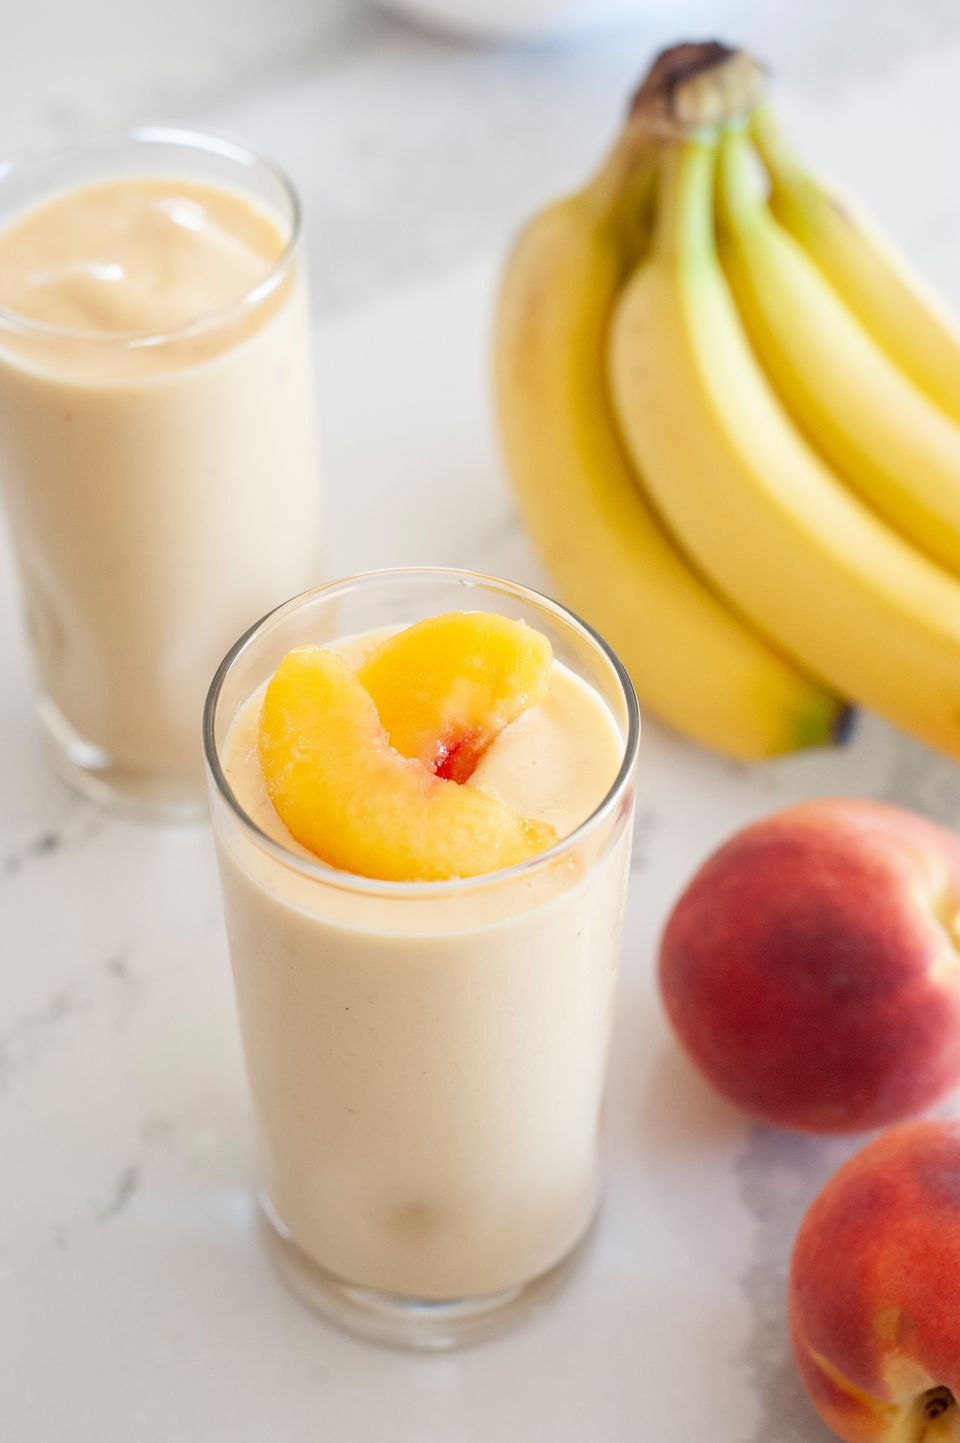 Peaches 'n' cream smoothie topped with sliced peaches and fresh fruit and a second smoothie around the glass.